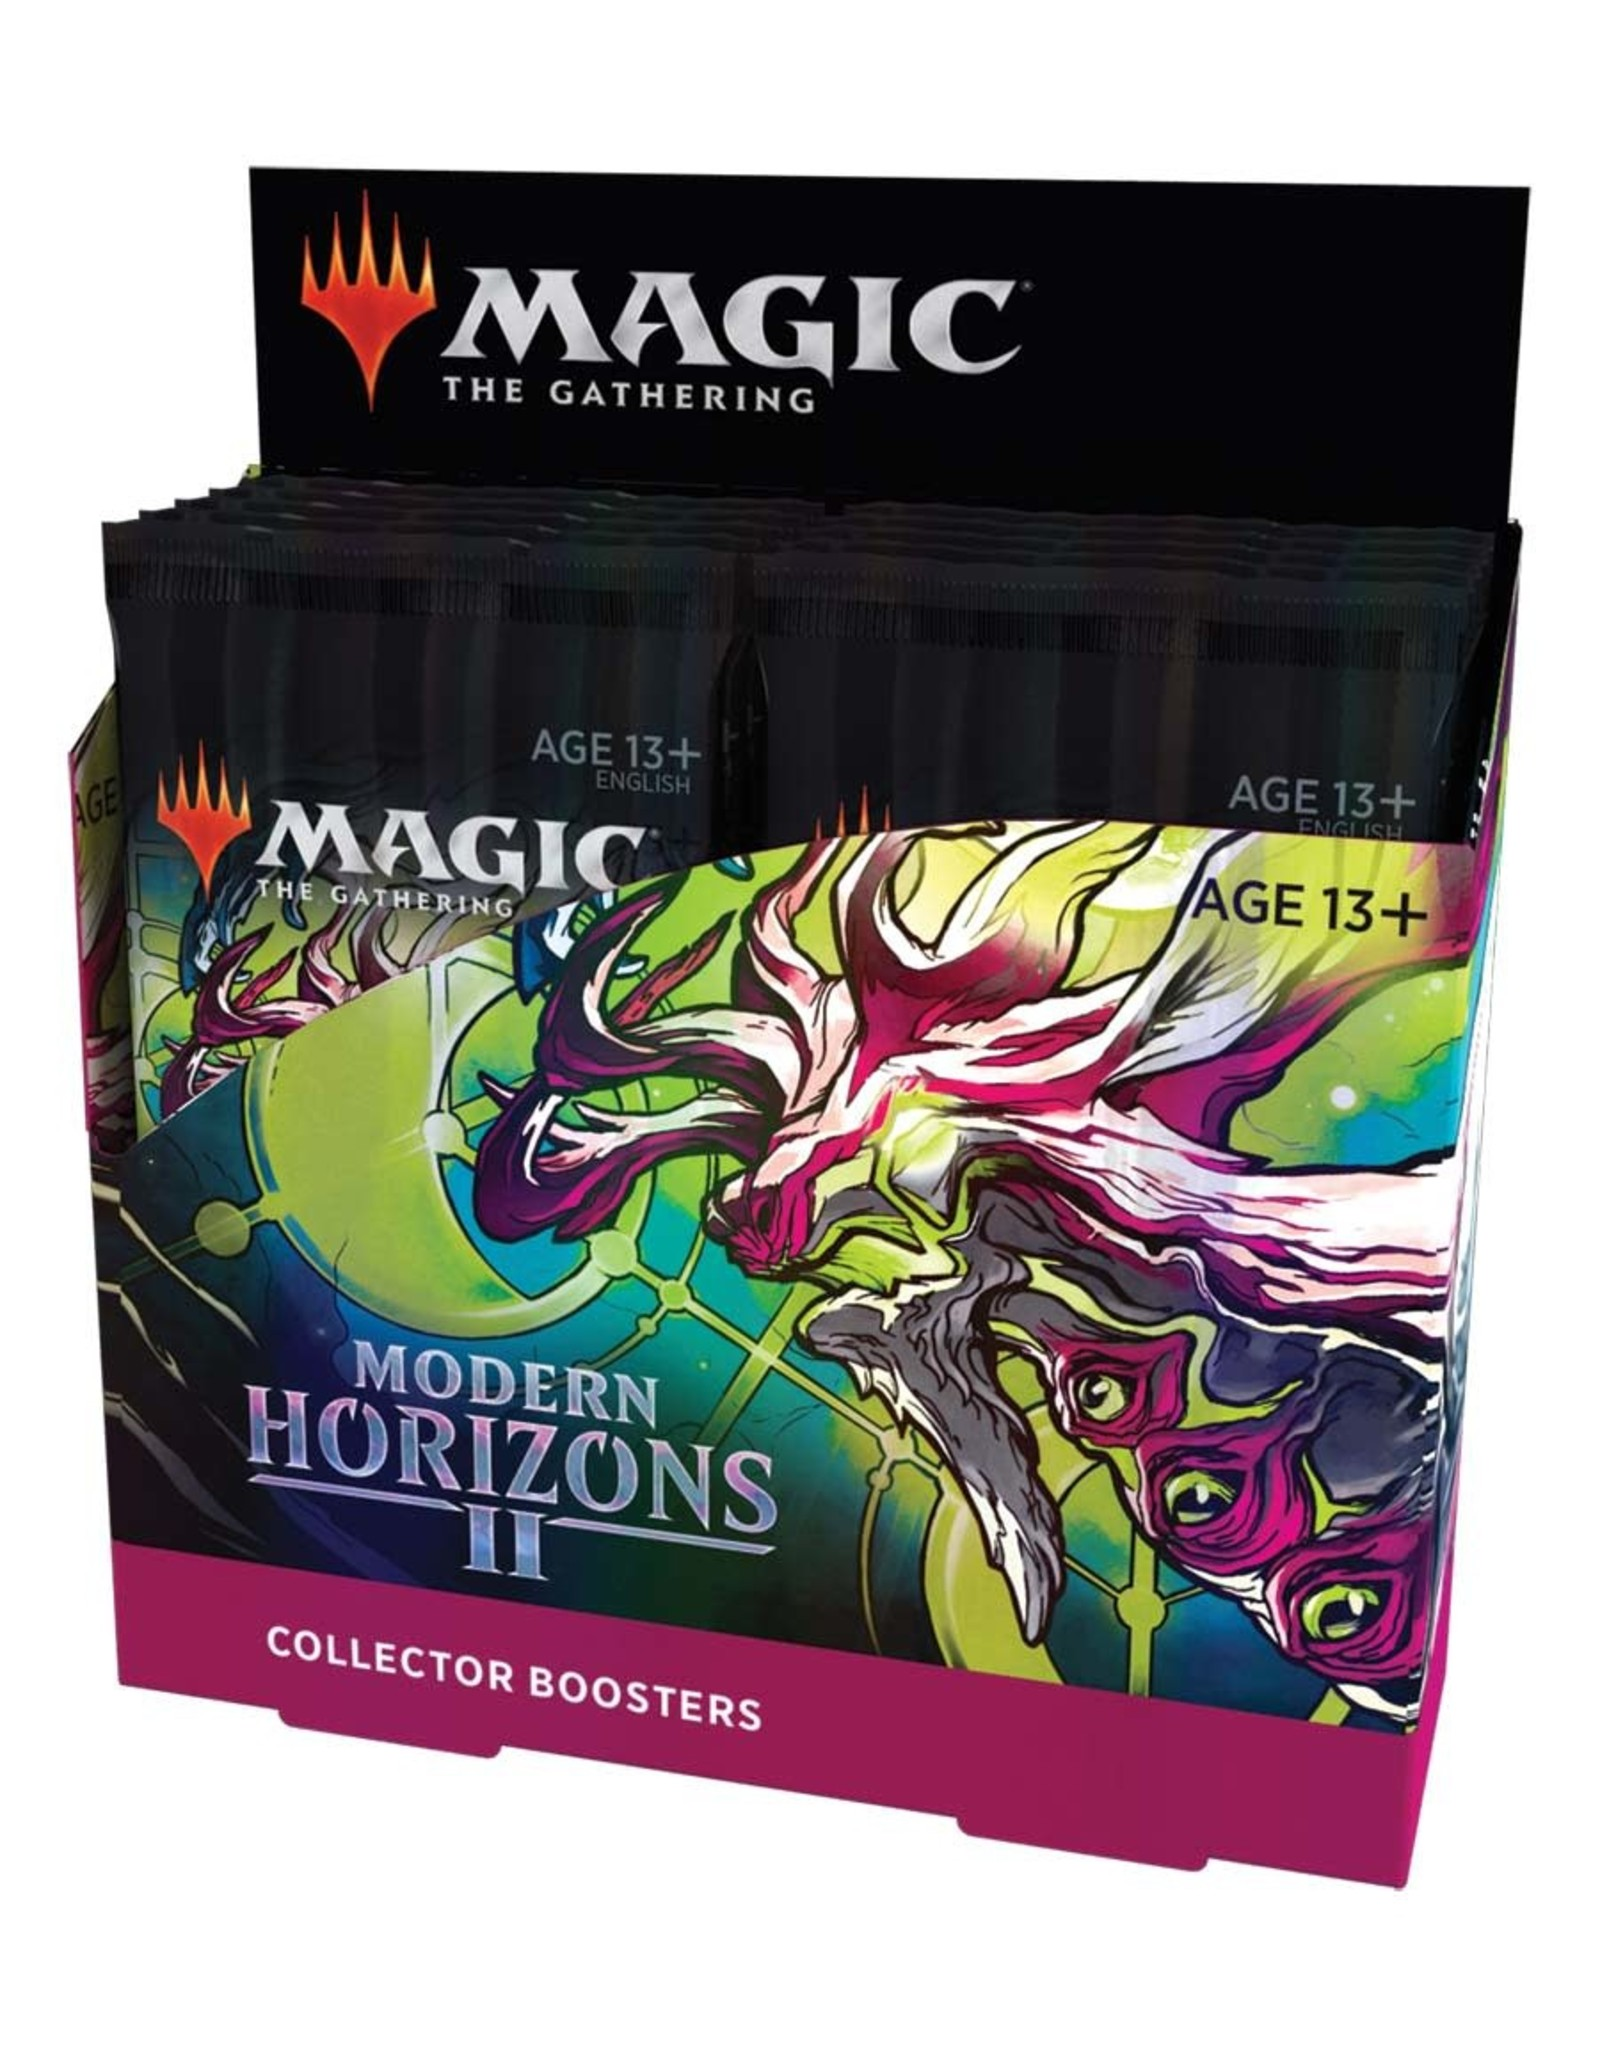 WIZARDS OF THE COAST MODERN HORIZONS II COLLECTOR BOOSTER BOX PRE-ORDER